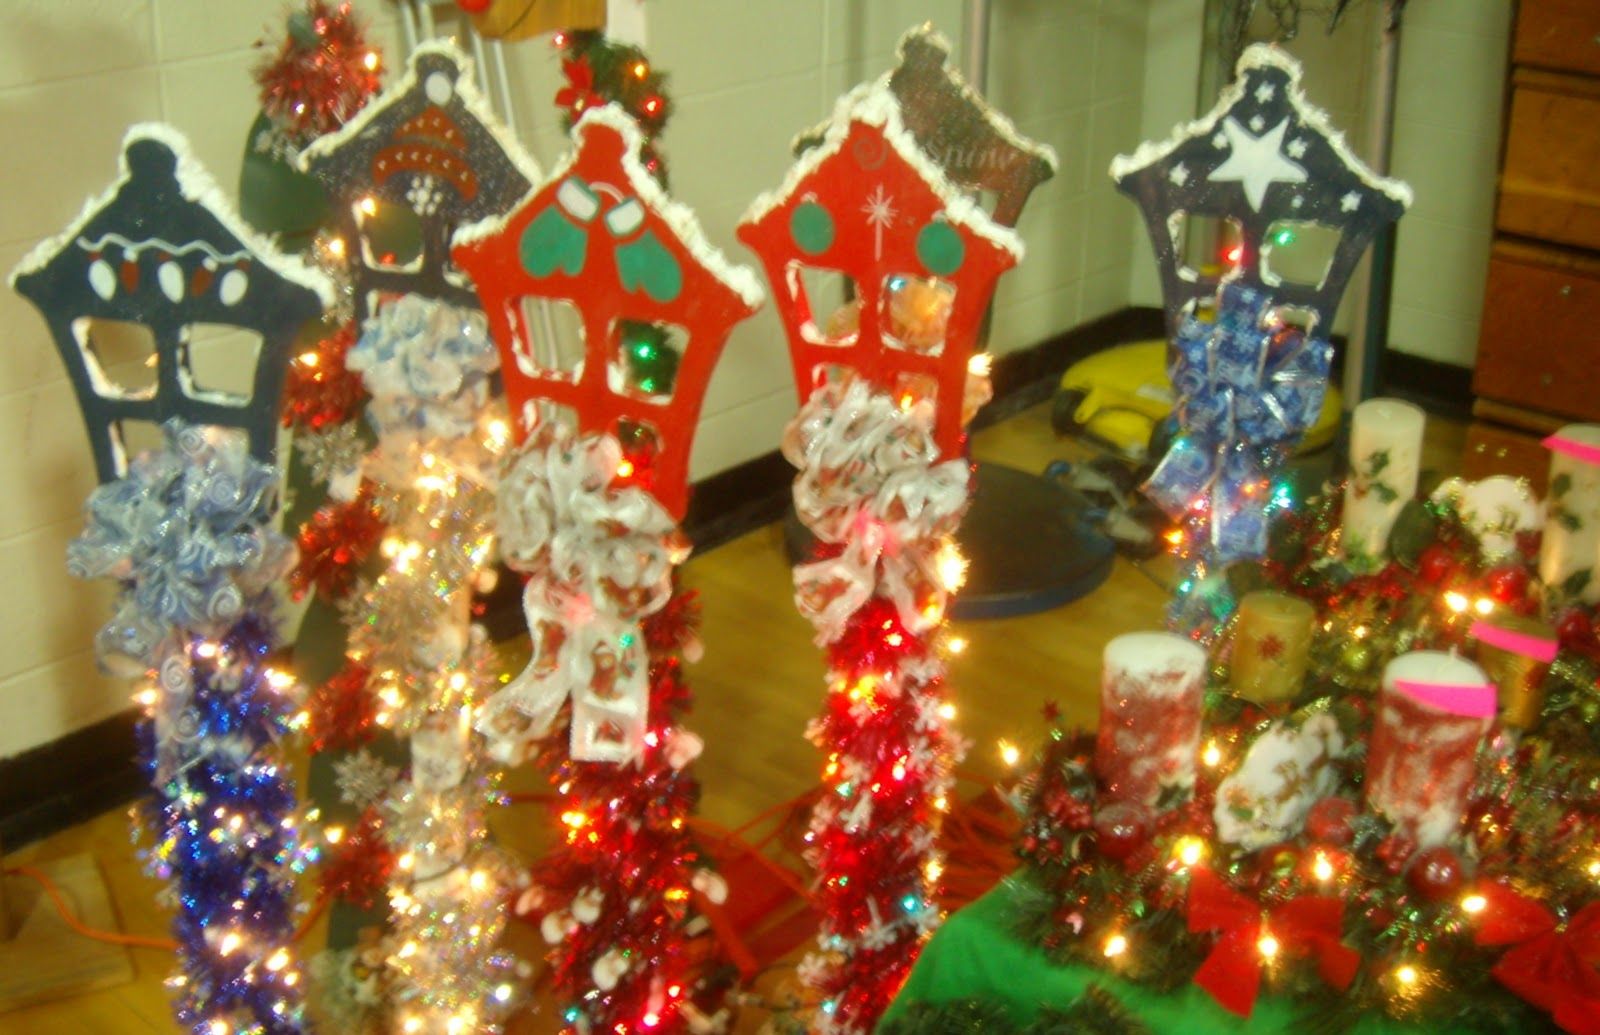 Christmas Craft Sale Ideas http://aberdeennjlife.blogspot.com/2010/11/2010-jolly-mouse-craft-show-well.html